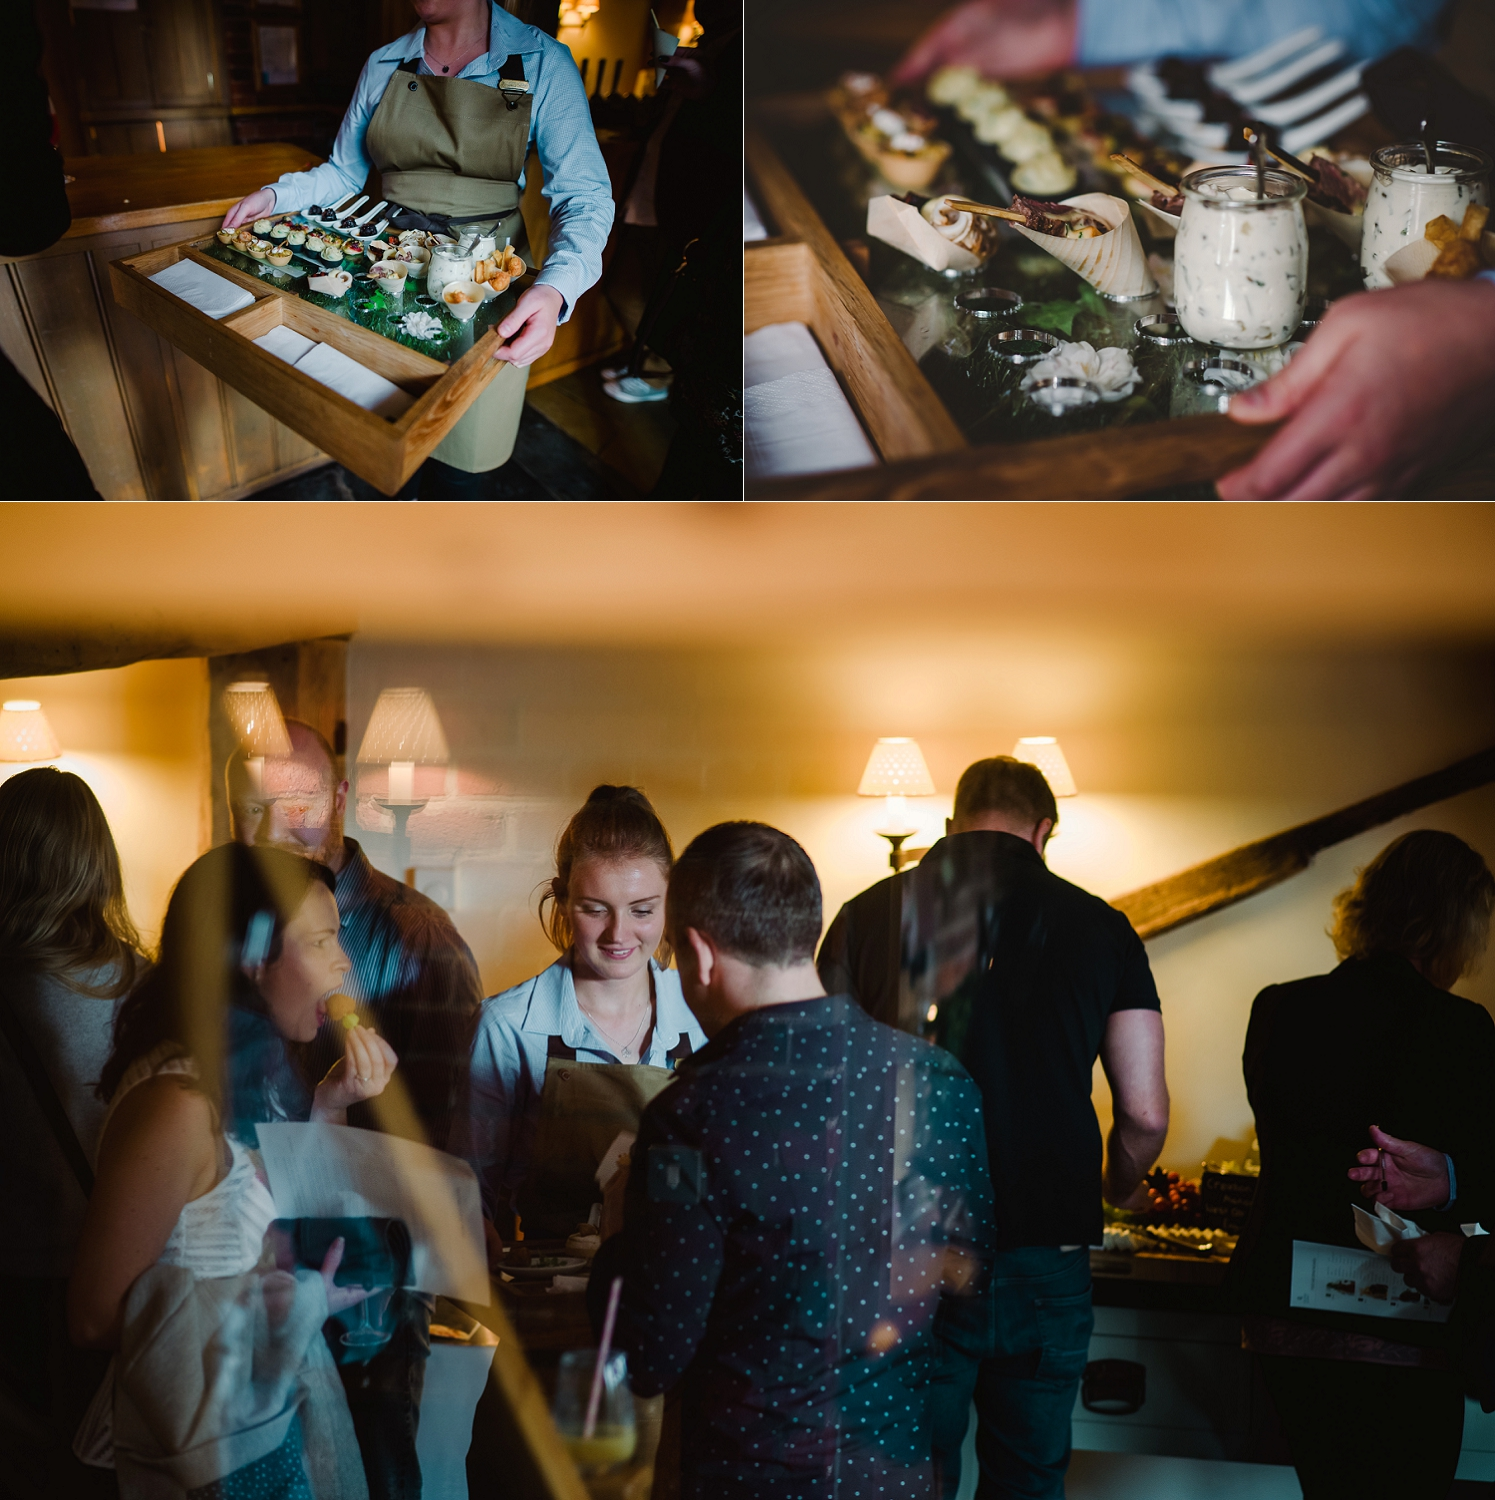 Curradine_Tasting_Event_Oct_2017_amytiphoto_0008.jpg